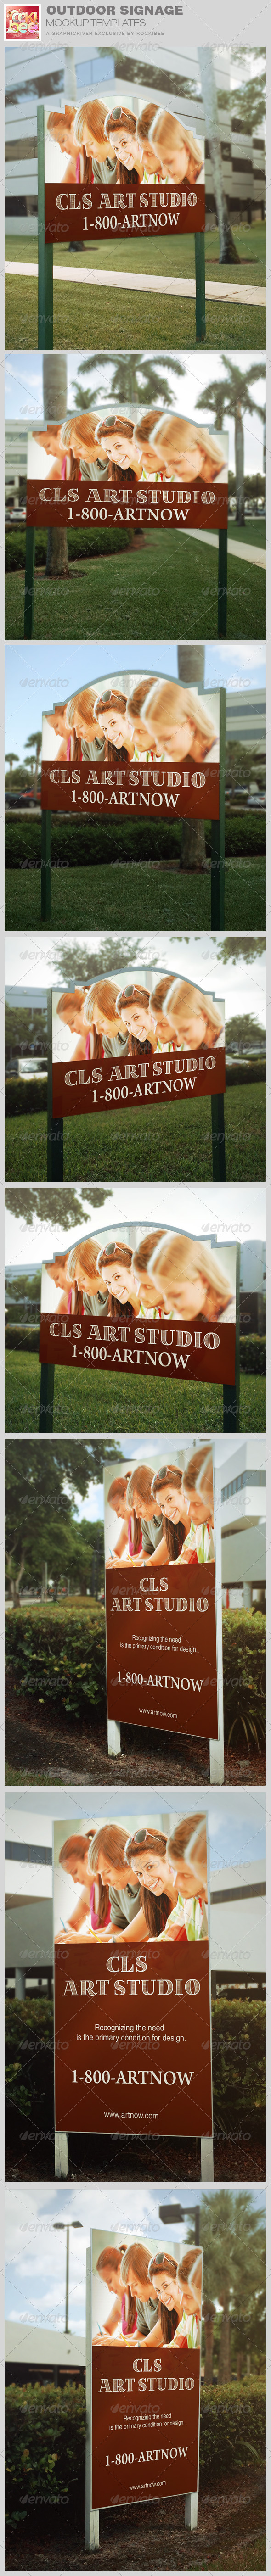 GraphicRiver Outdoor Signage Mockup Template 8680130